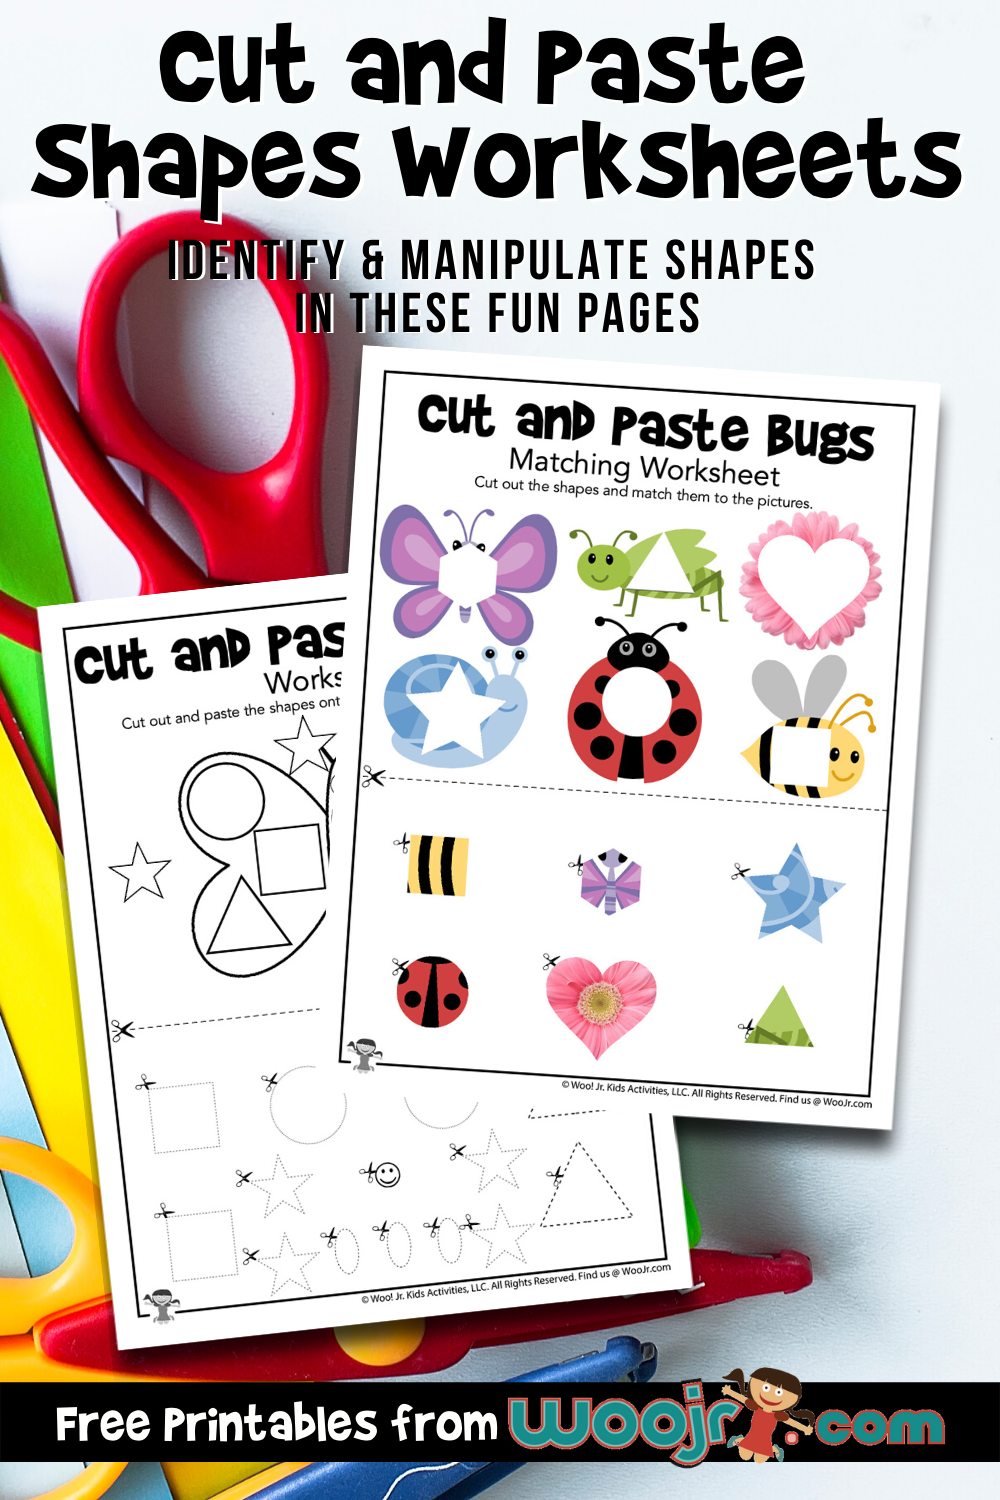 Cut and Paste Shapes Worksheets   Woo Jr. Kids Activities